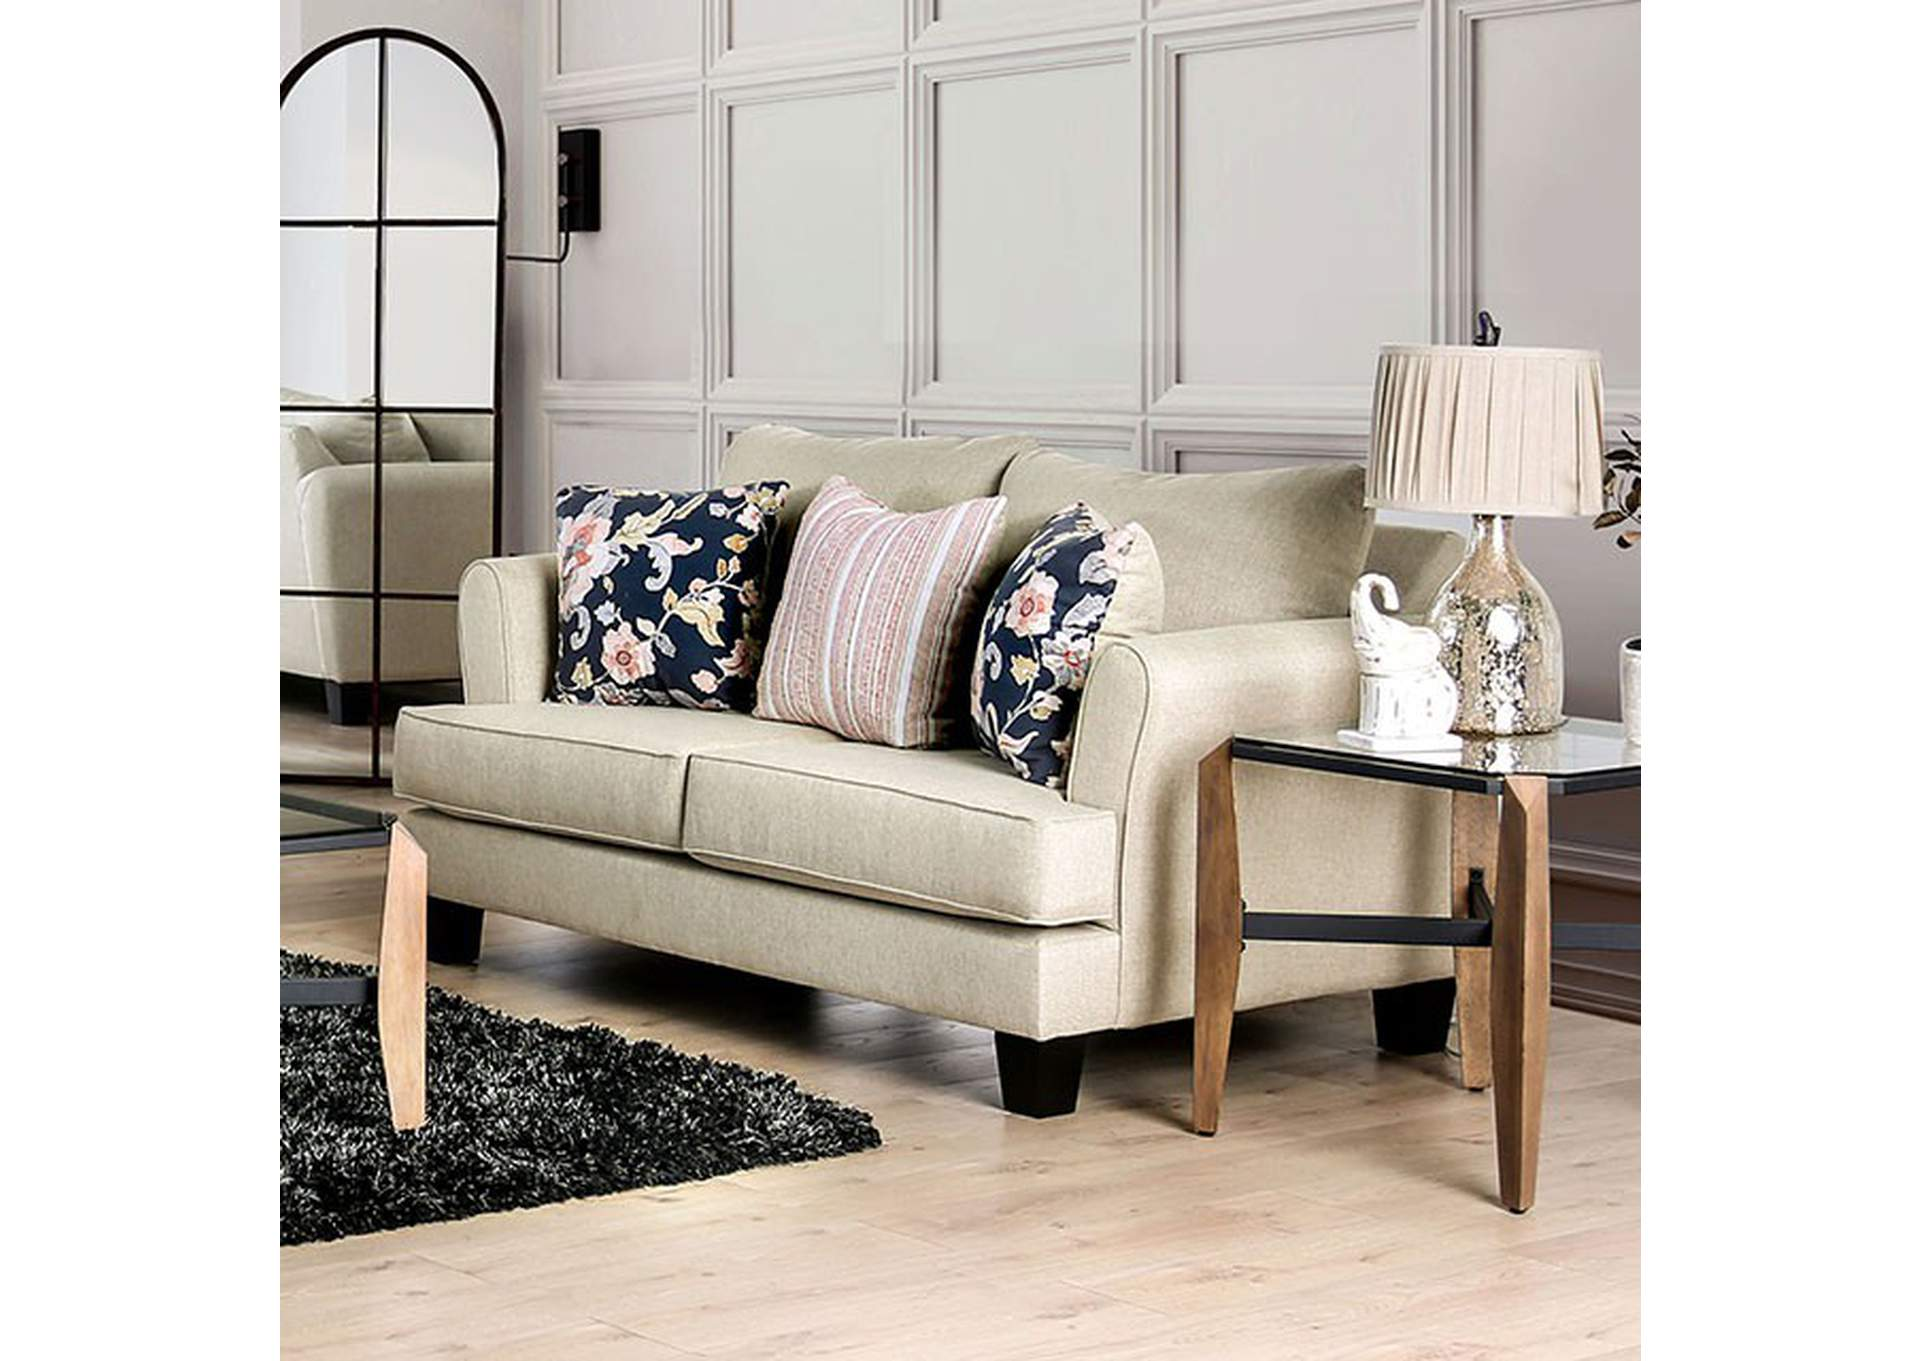 Denbigh Beige Loveseat,Furniture of America